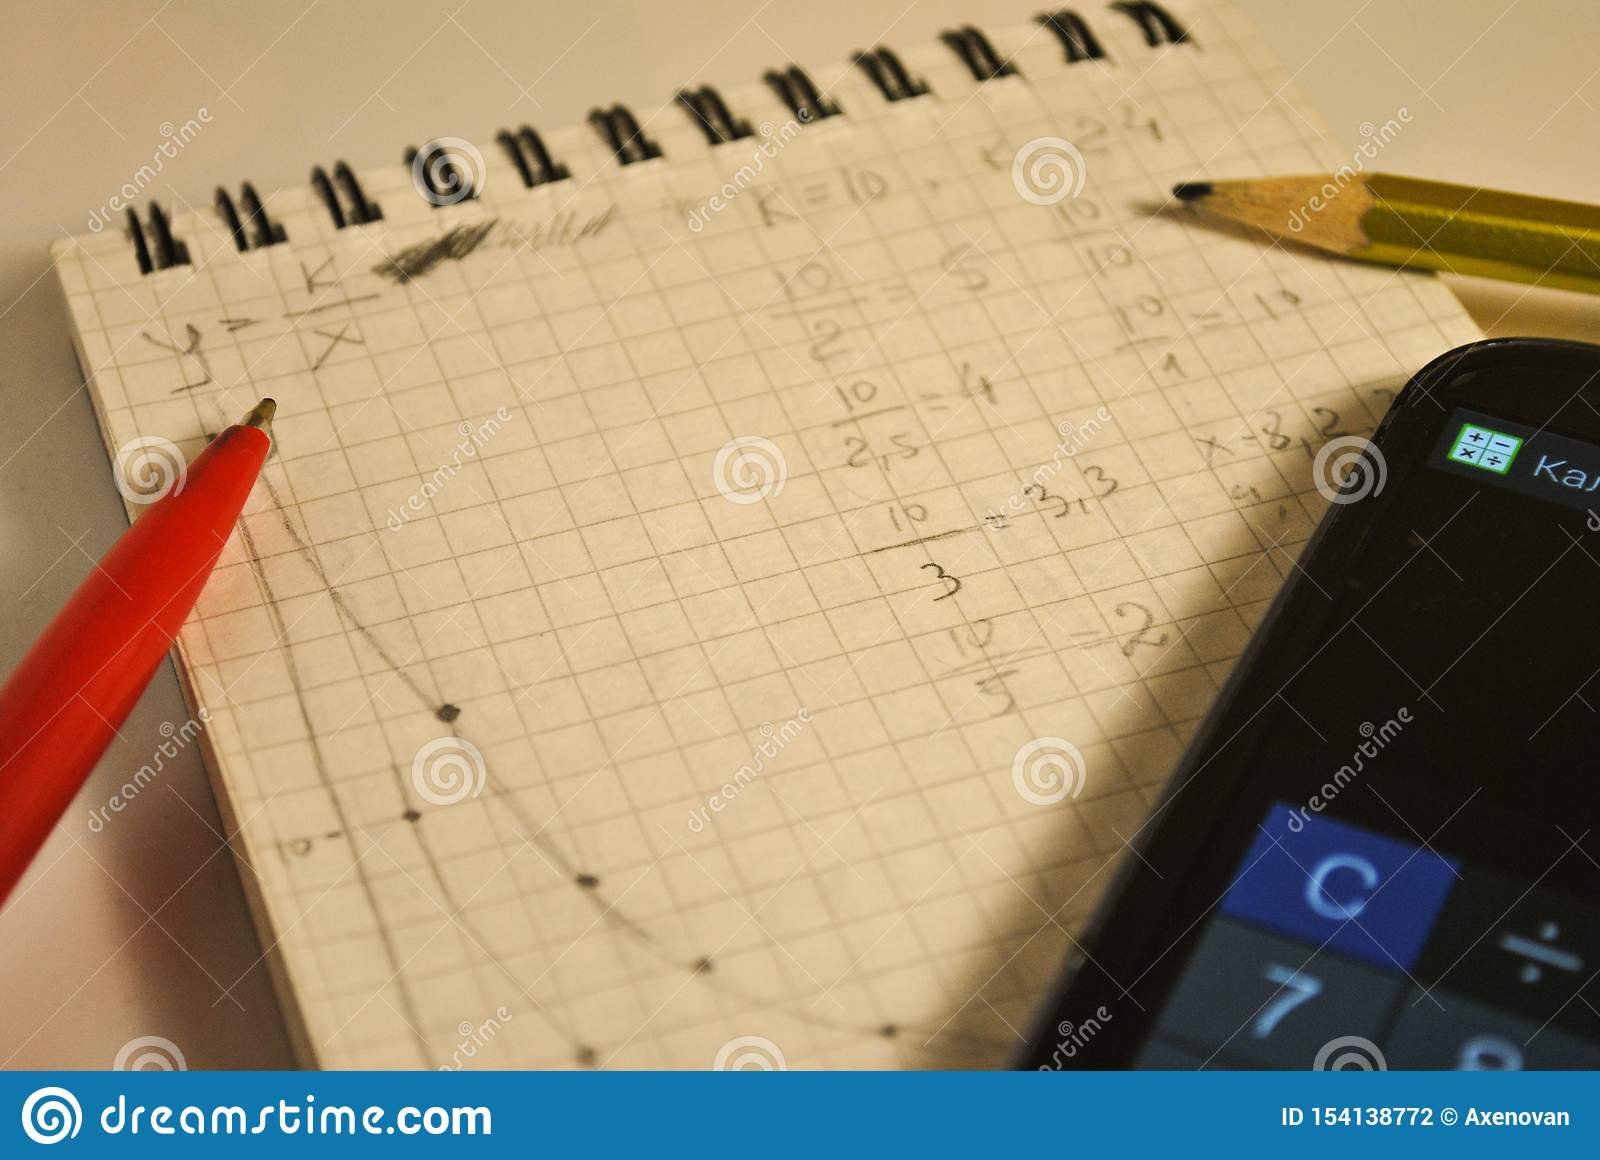 Notebook, formulas, mathematical graphics, homework, mobile phone